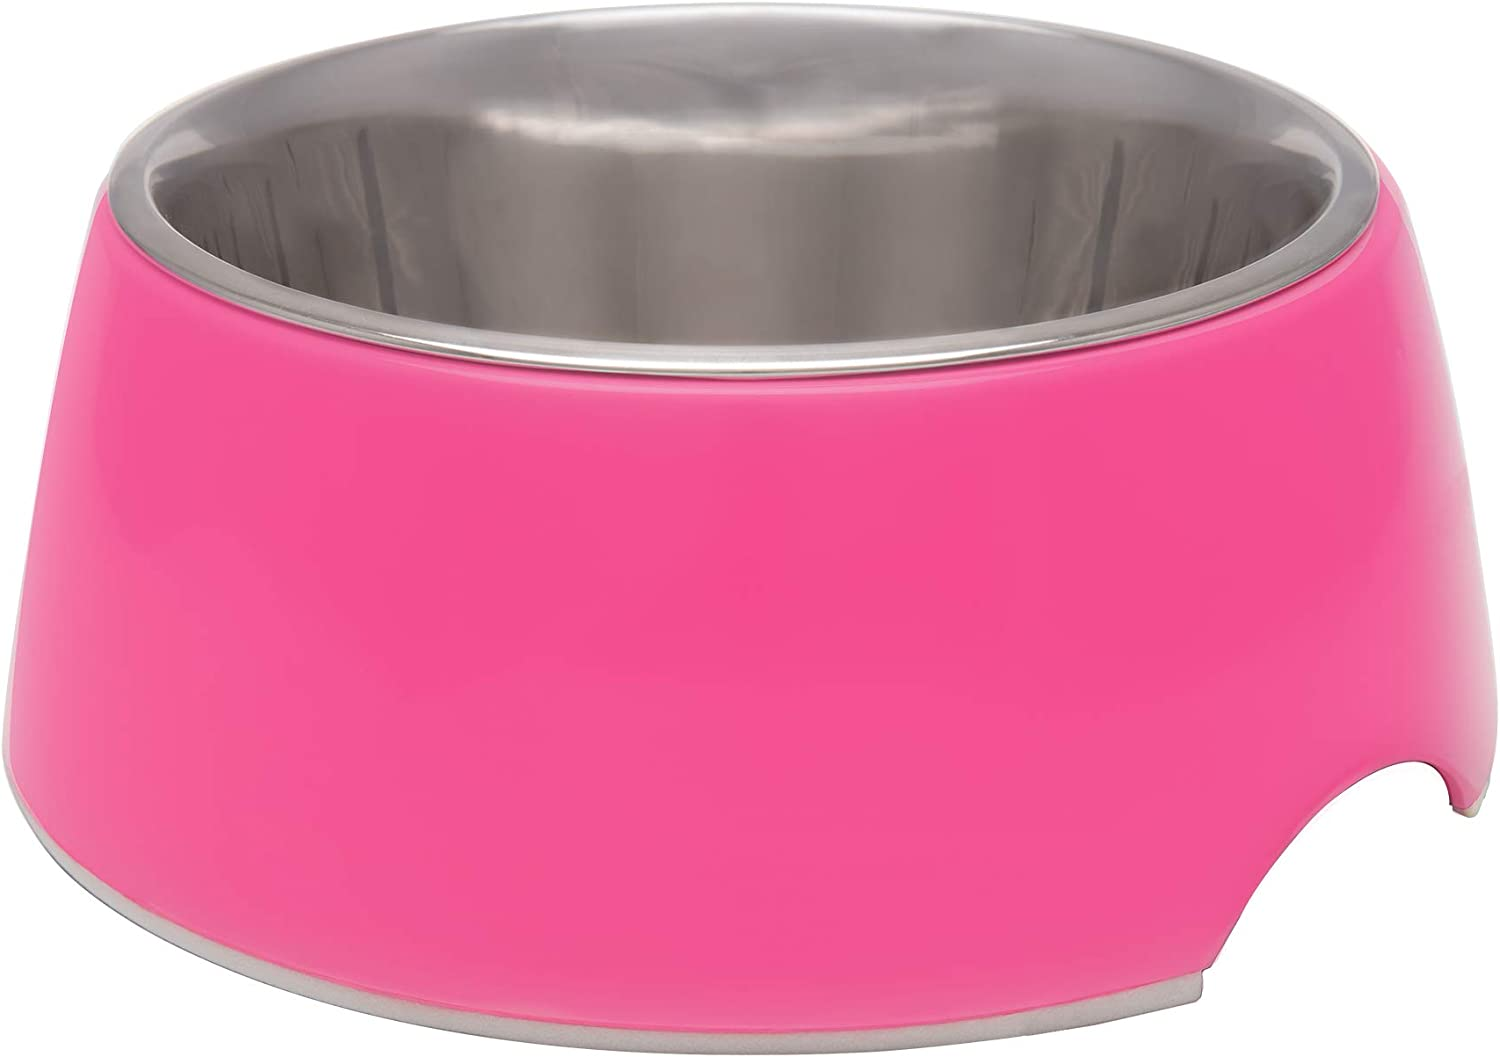 Loving Pets Retro Bowl for Dogs, Hot Pink, Medium (7132)